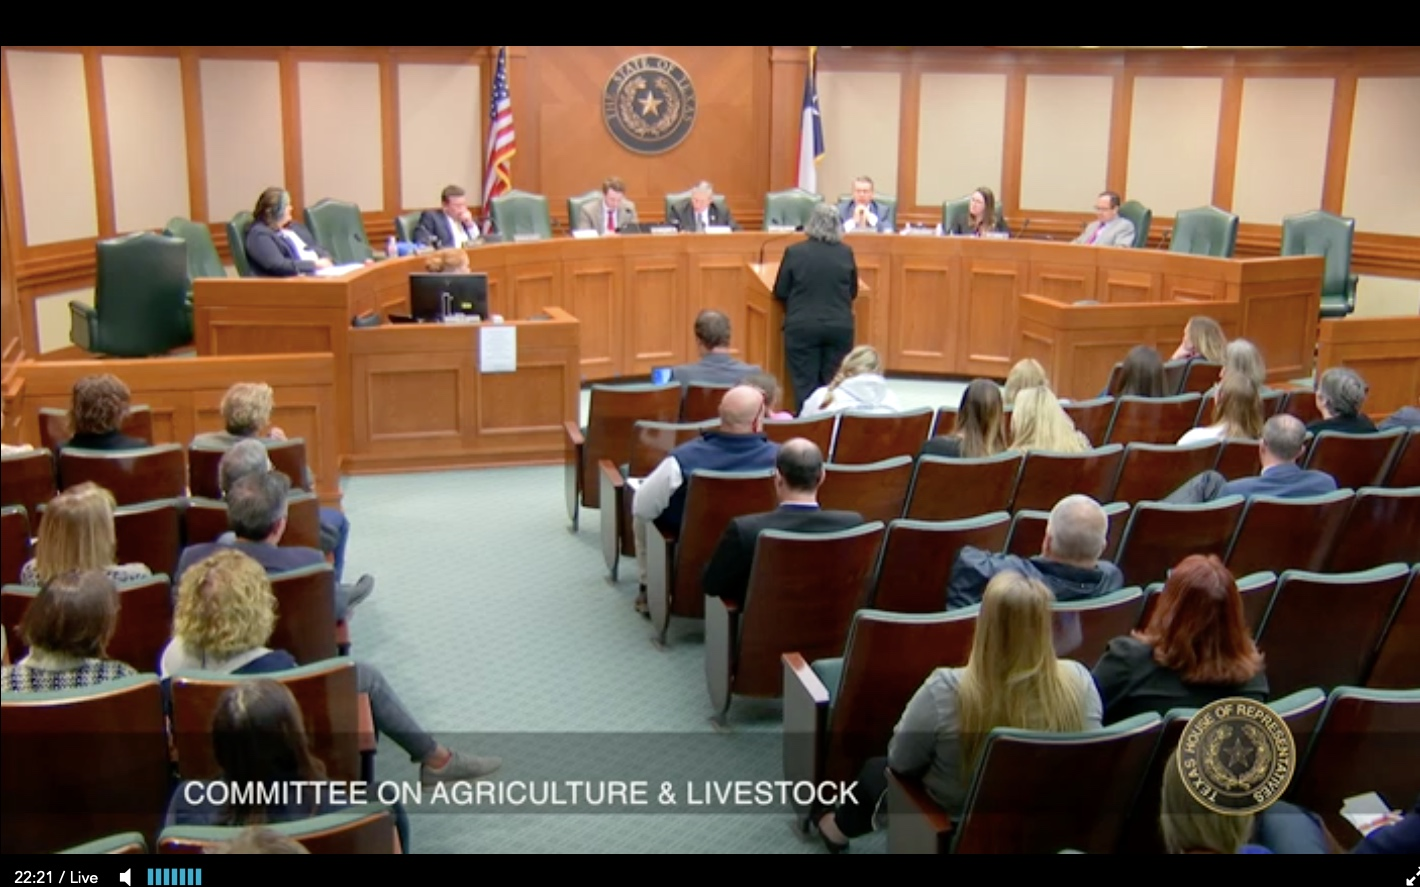 Hearing on bill, Credit: Texas House of Representatives public hearing feed